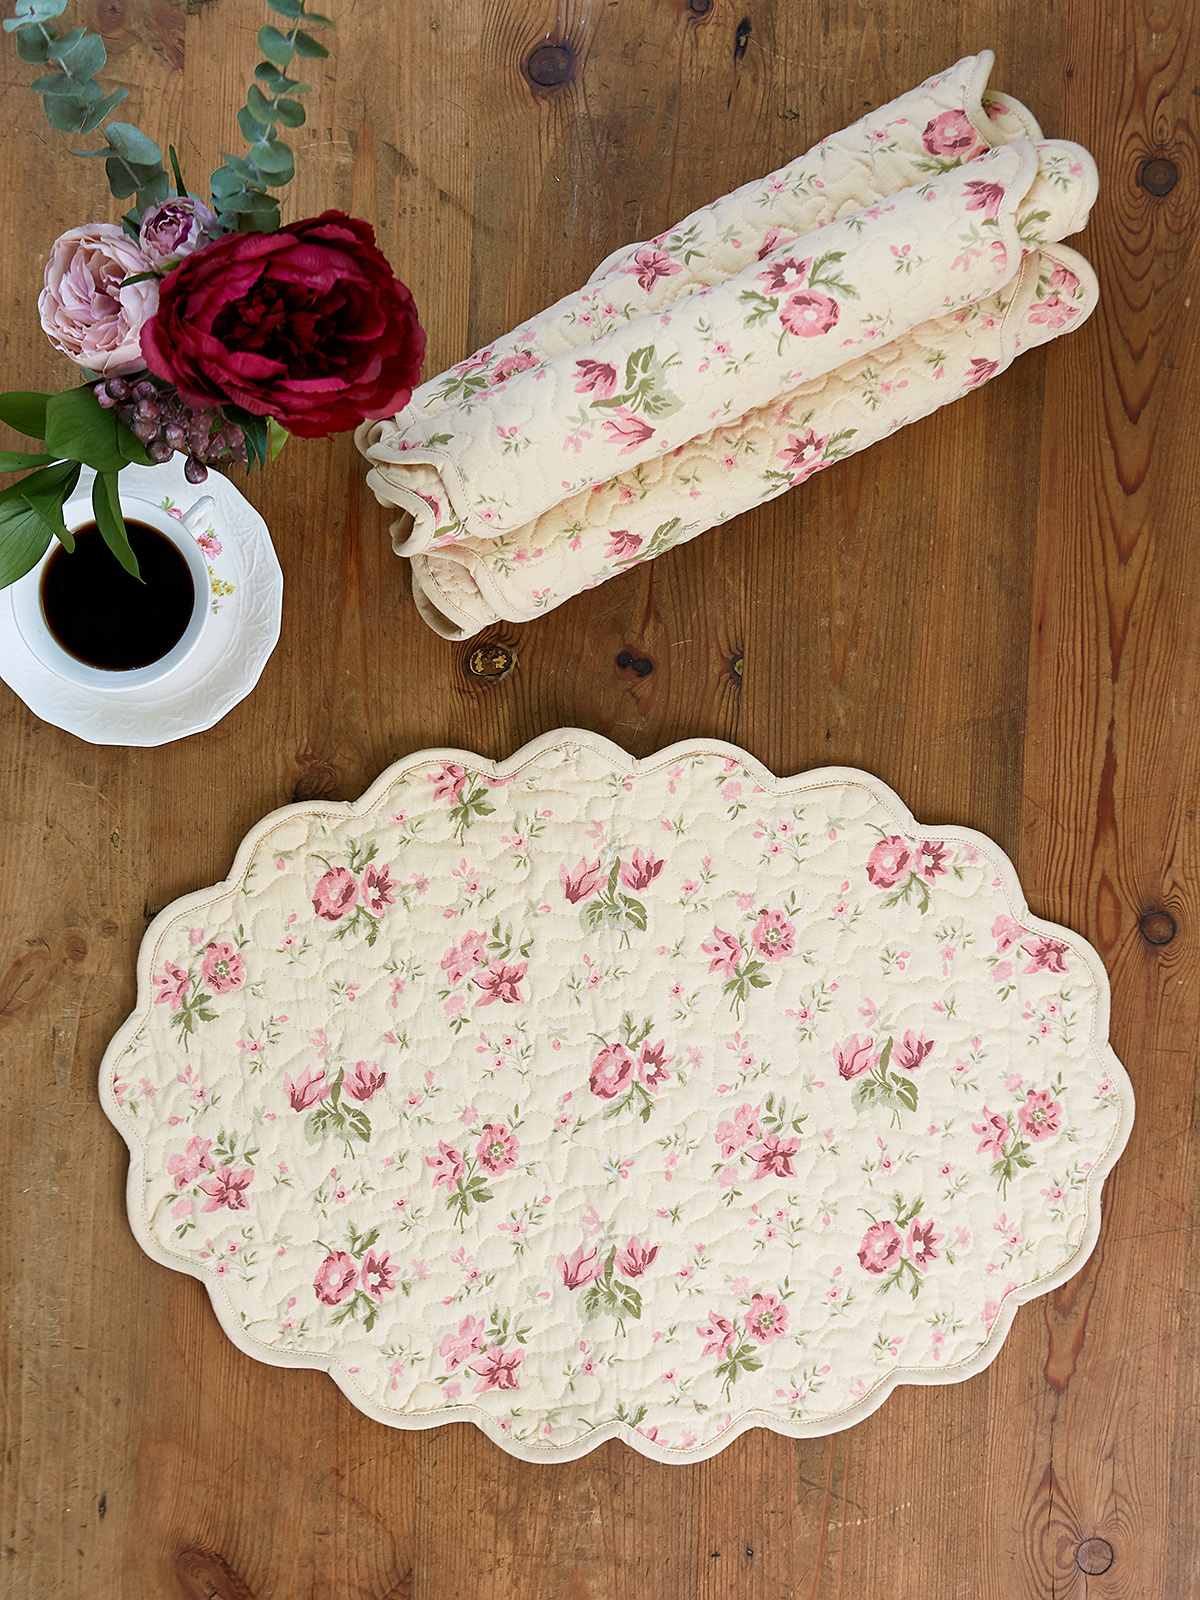 APRIL CORNELL QUILTED PLACMATS  IN ANTIQUE- SET OF 4-1